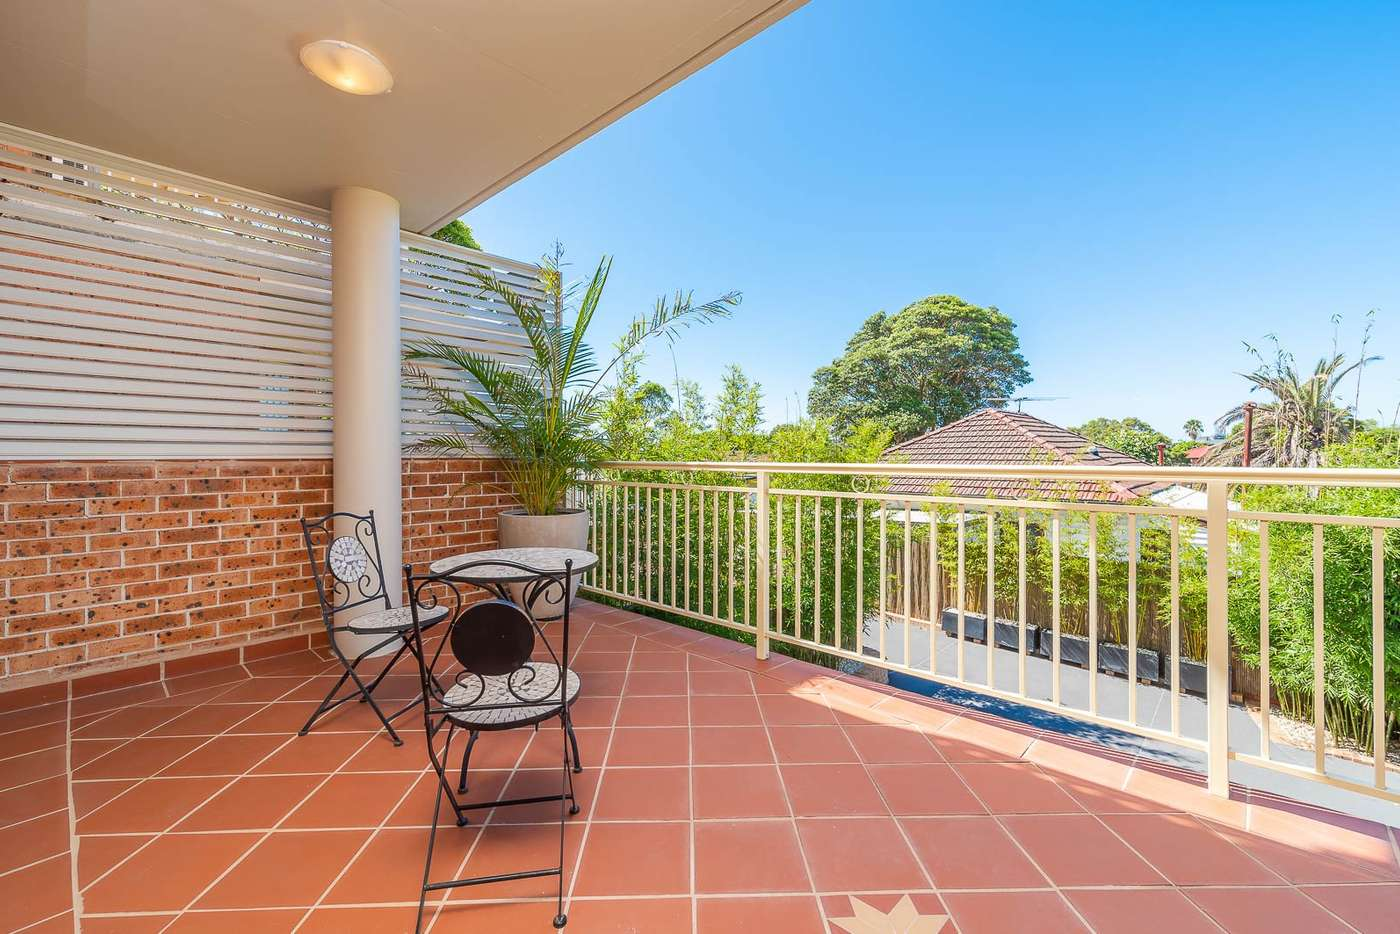 Sixth view of Homely house listing, 82 Moreton Street, Lakemba NSW 2195